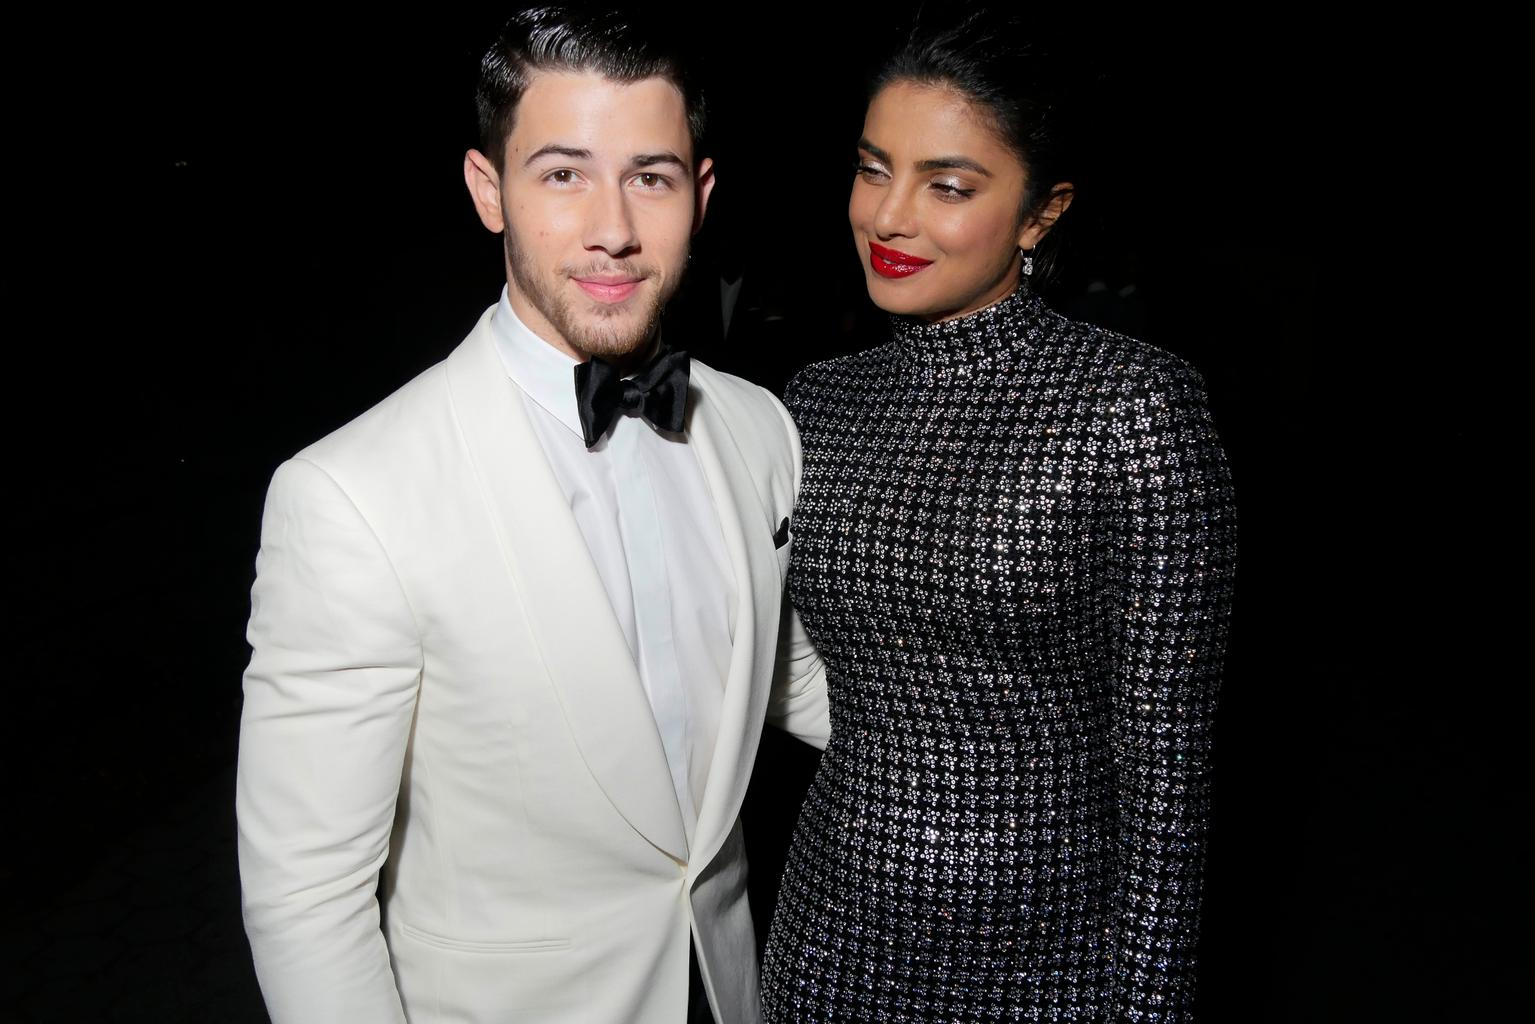 Priyanka Chopra welcomes Nick Jonas home with loved-up photo